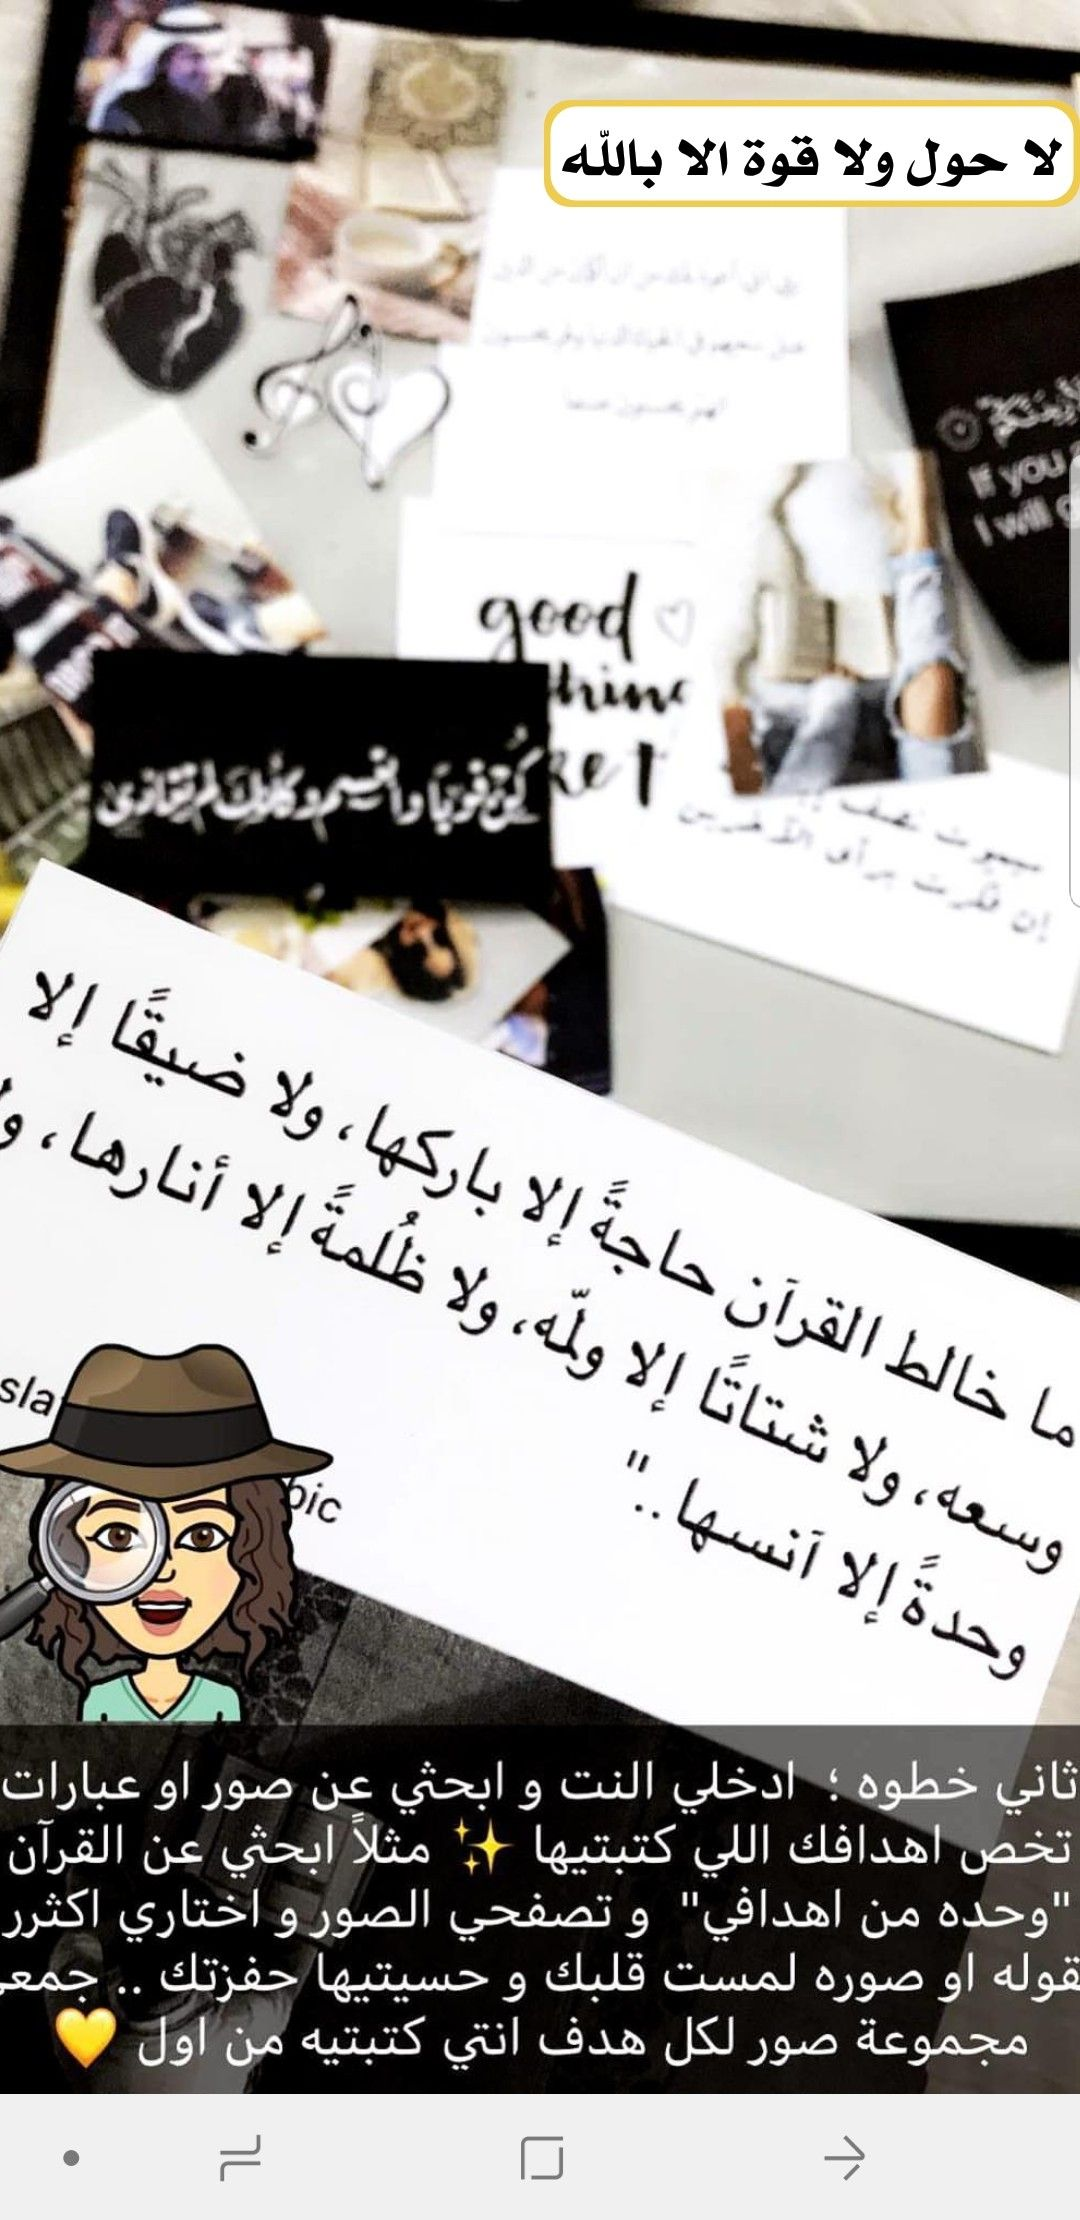 Pin By Nonosaad4 On تحفيز للدراسة وجداول مهام Cards Against Humanity Arabic Words Cards